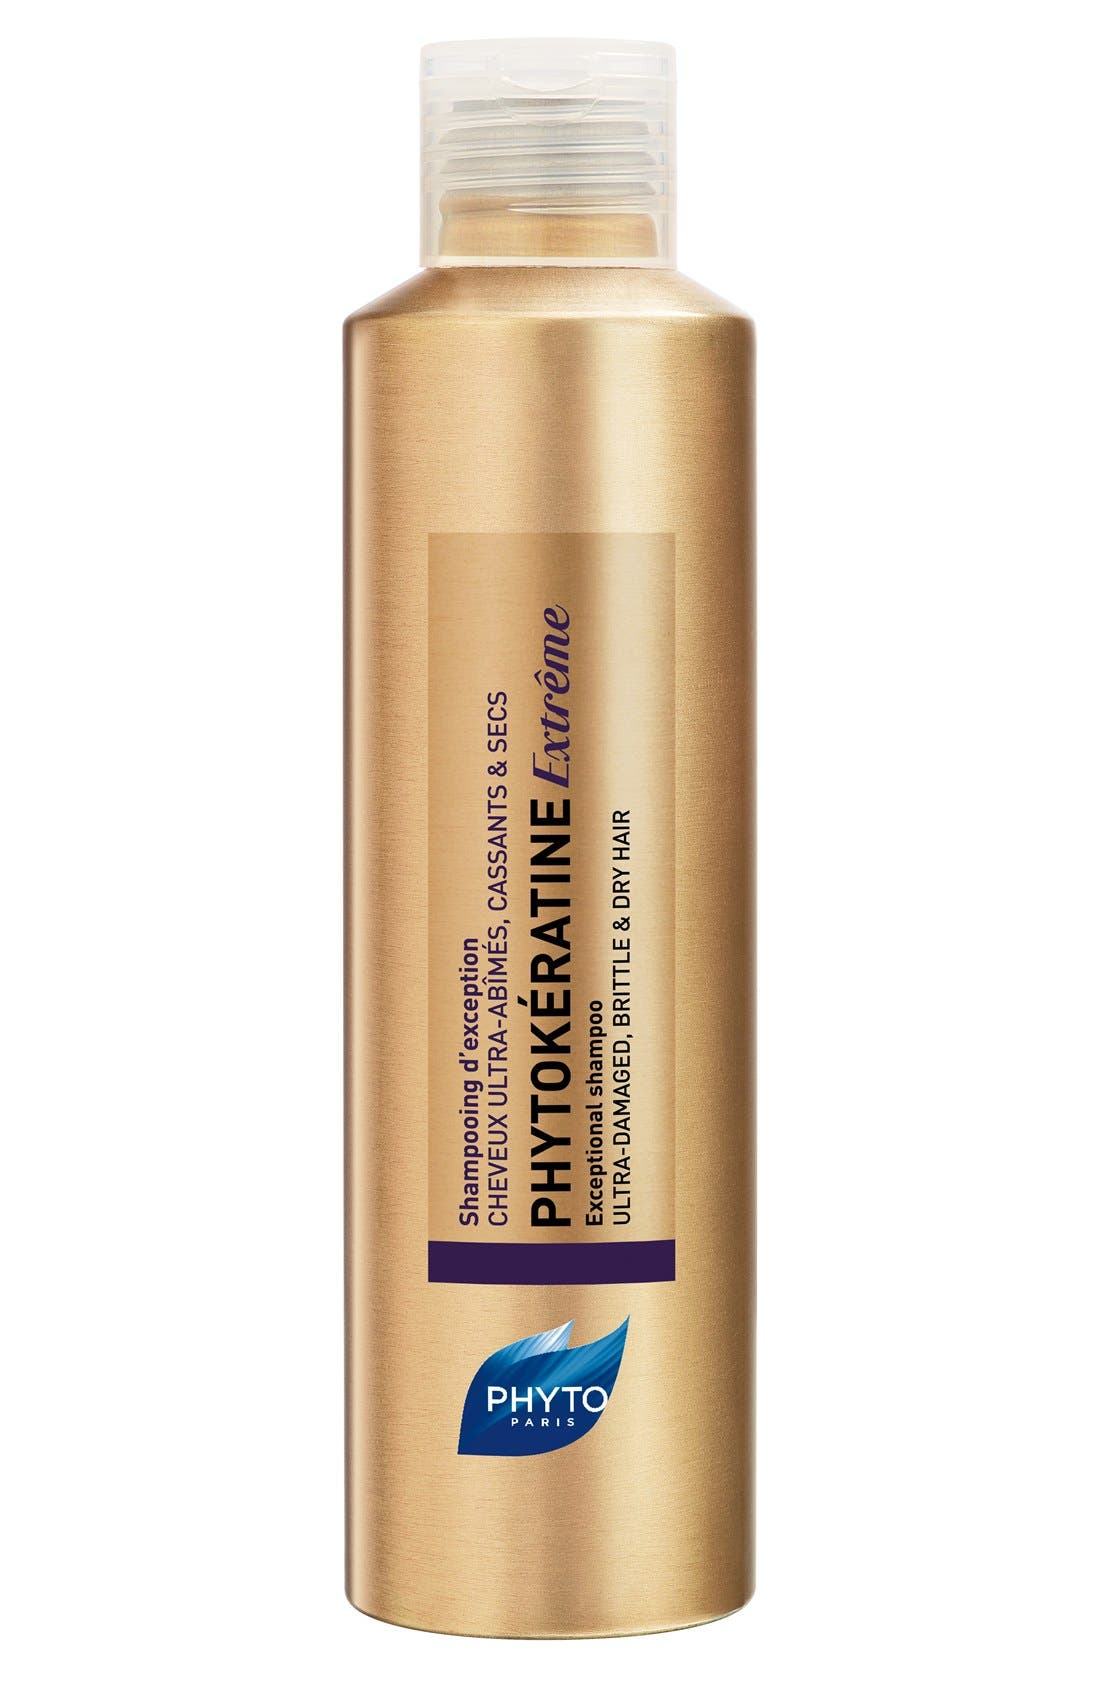 Phytokératine Extrême Exceptional Shampoo,                             Main thumbnail 1, color,                             NO COLOR